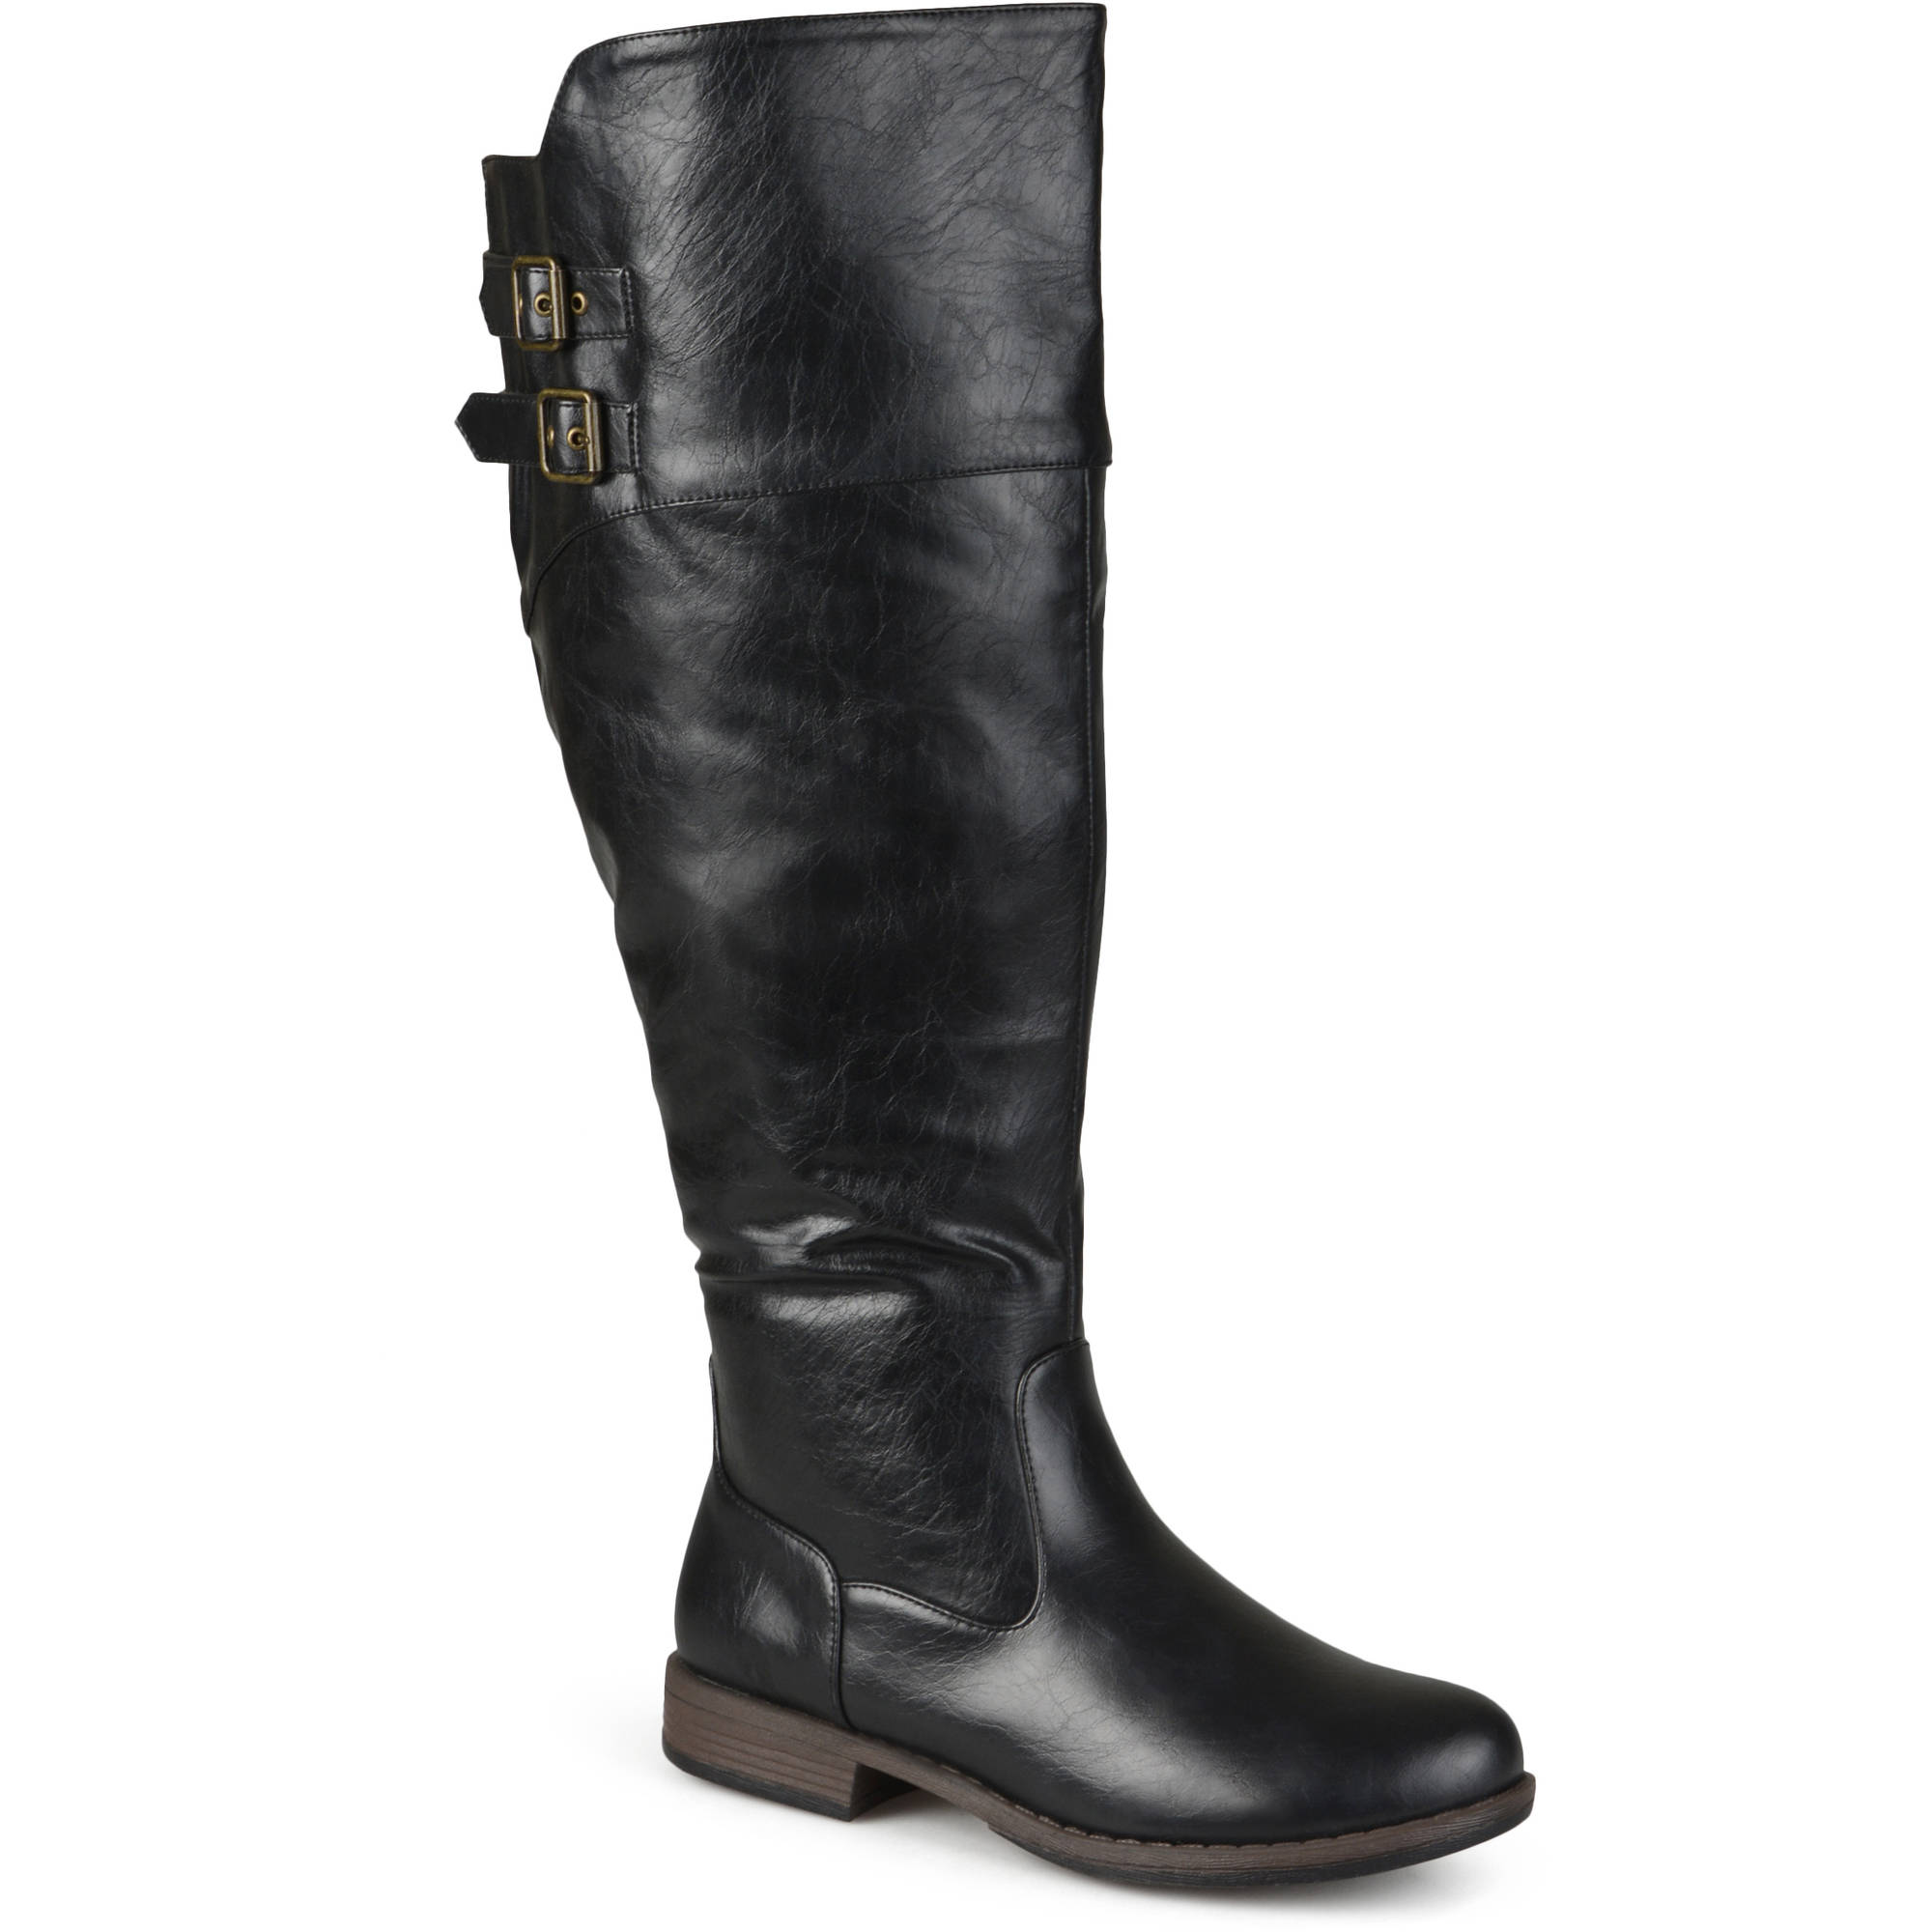 Brinley Co. Womens Extra Wide Calf Double-Buckle Knee-High Riding ...